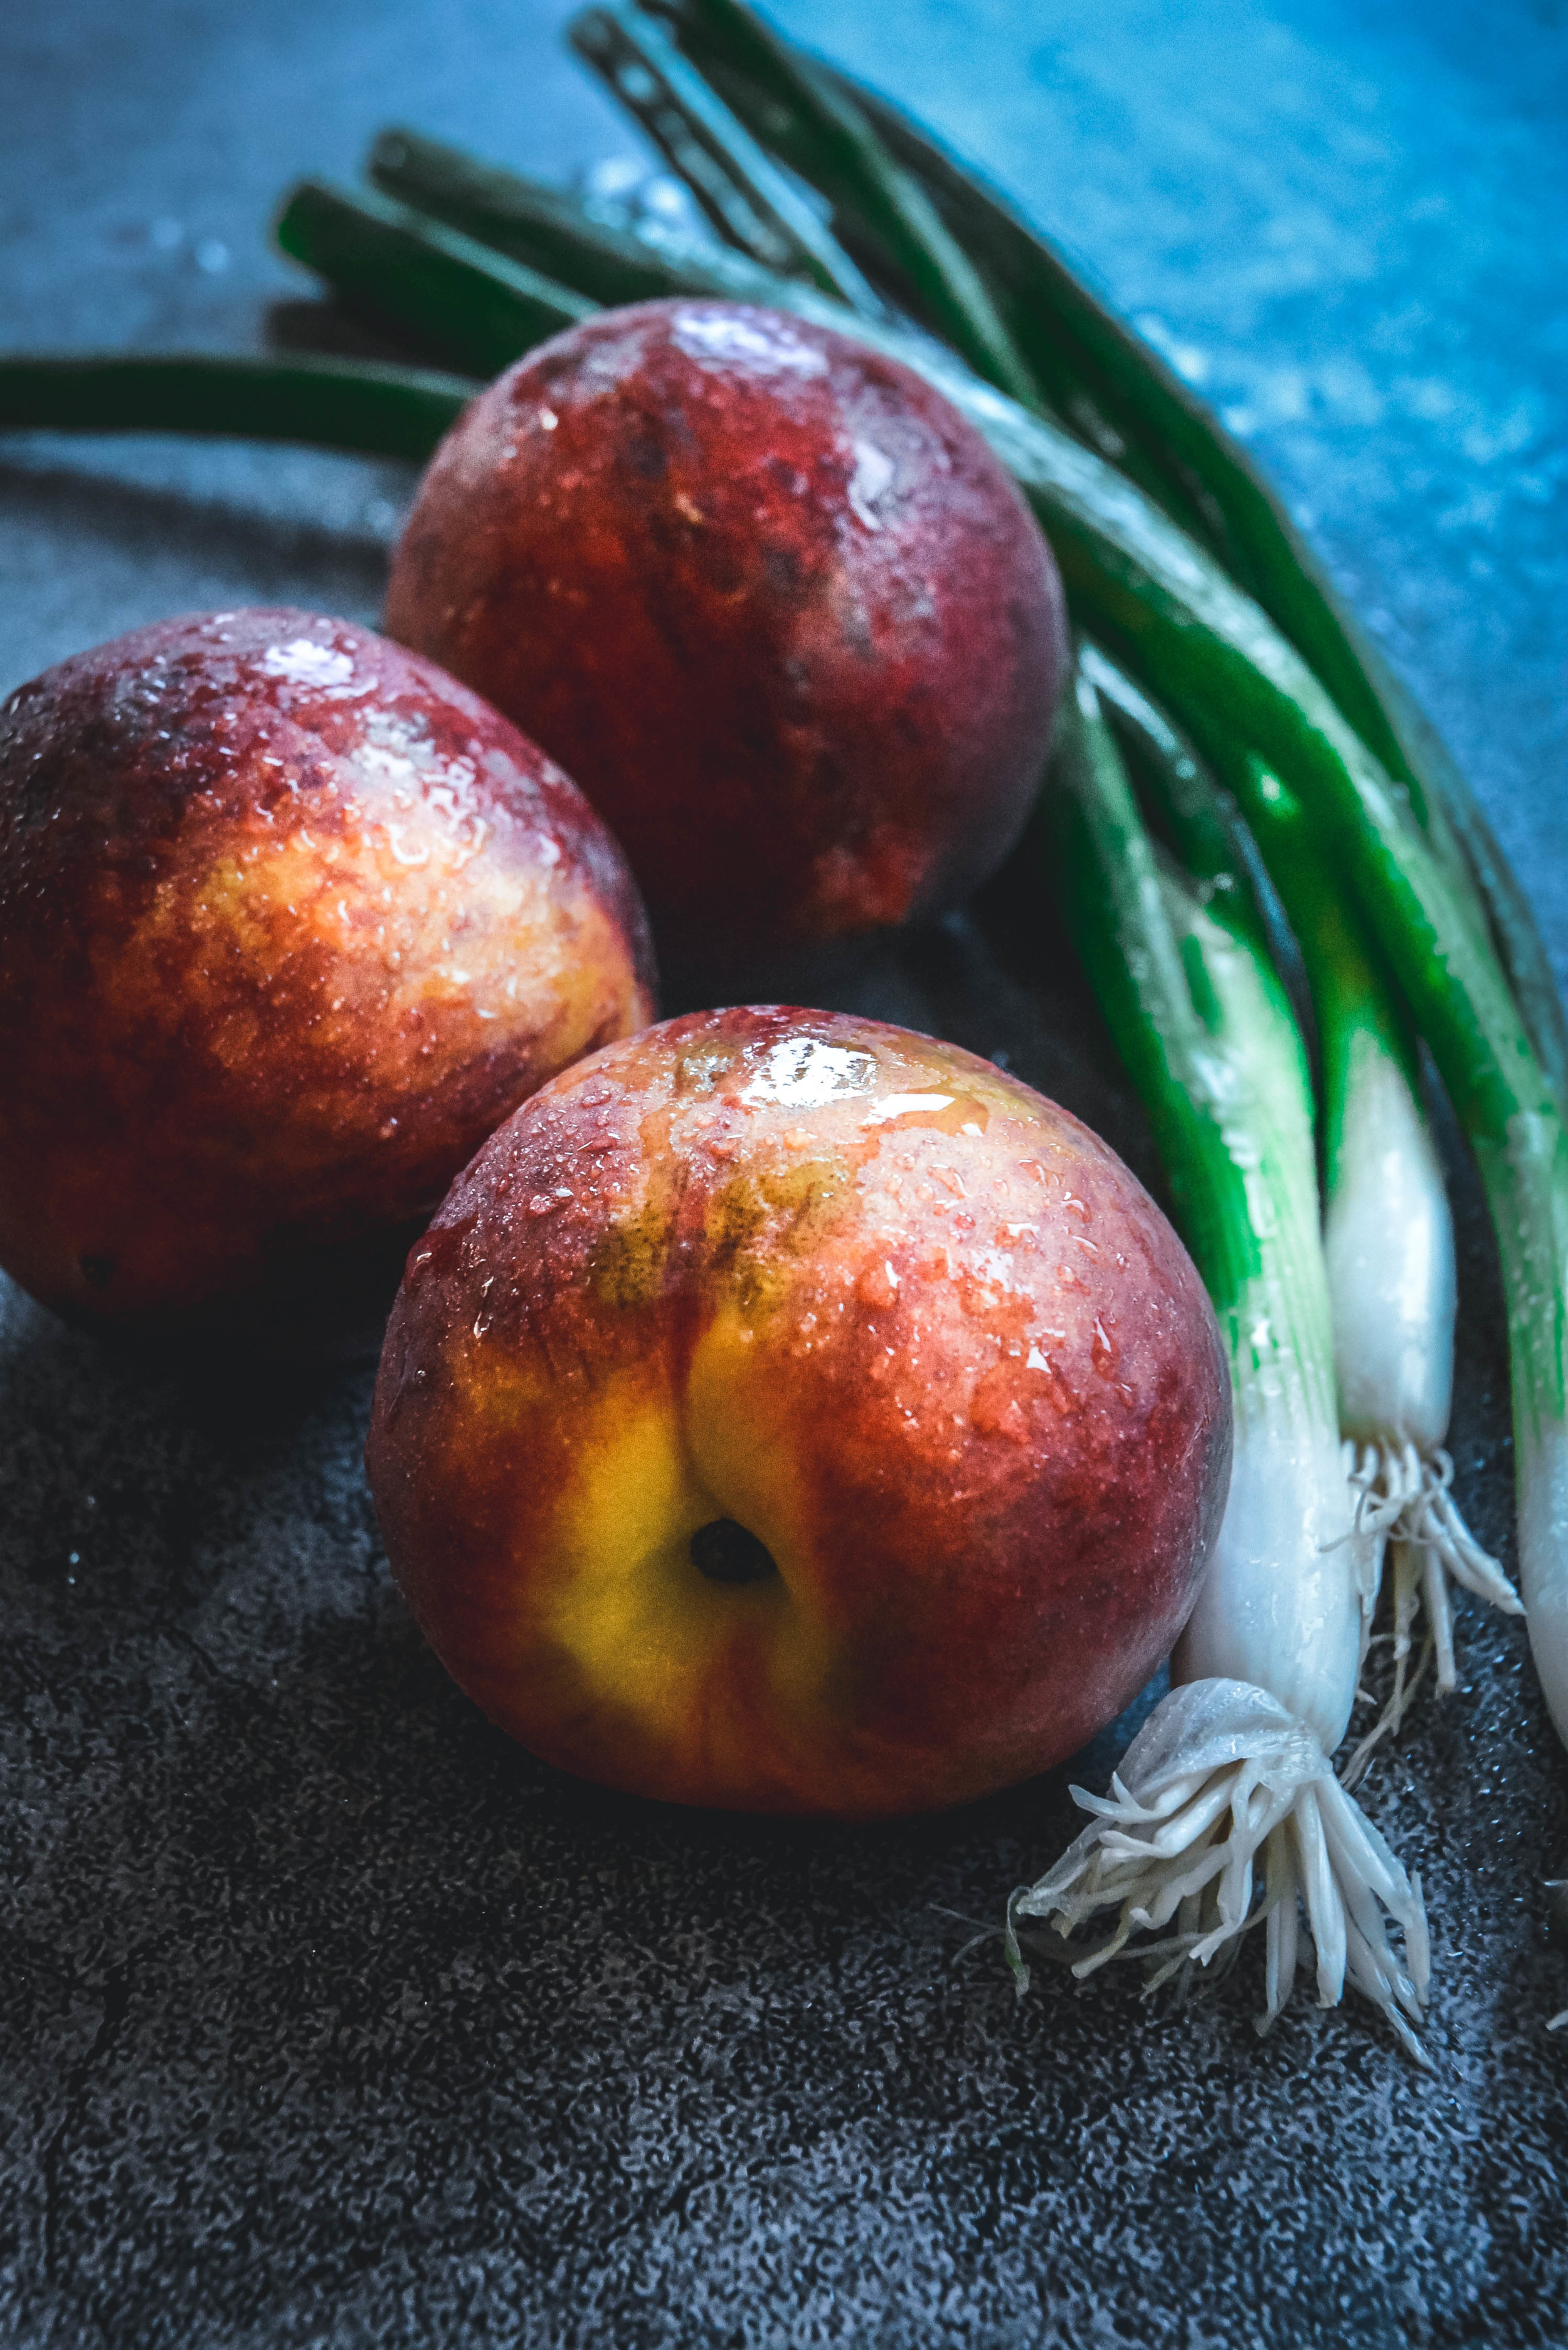 scallions and peaches